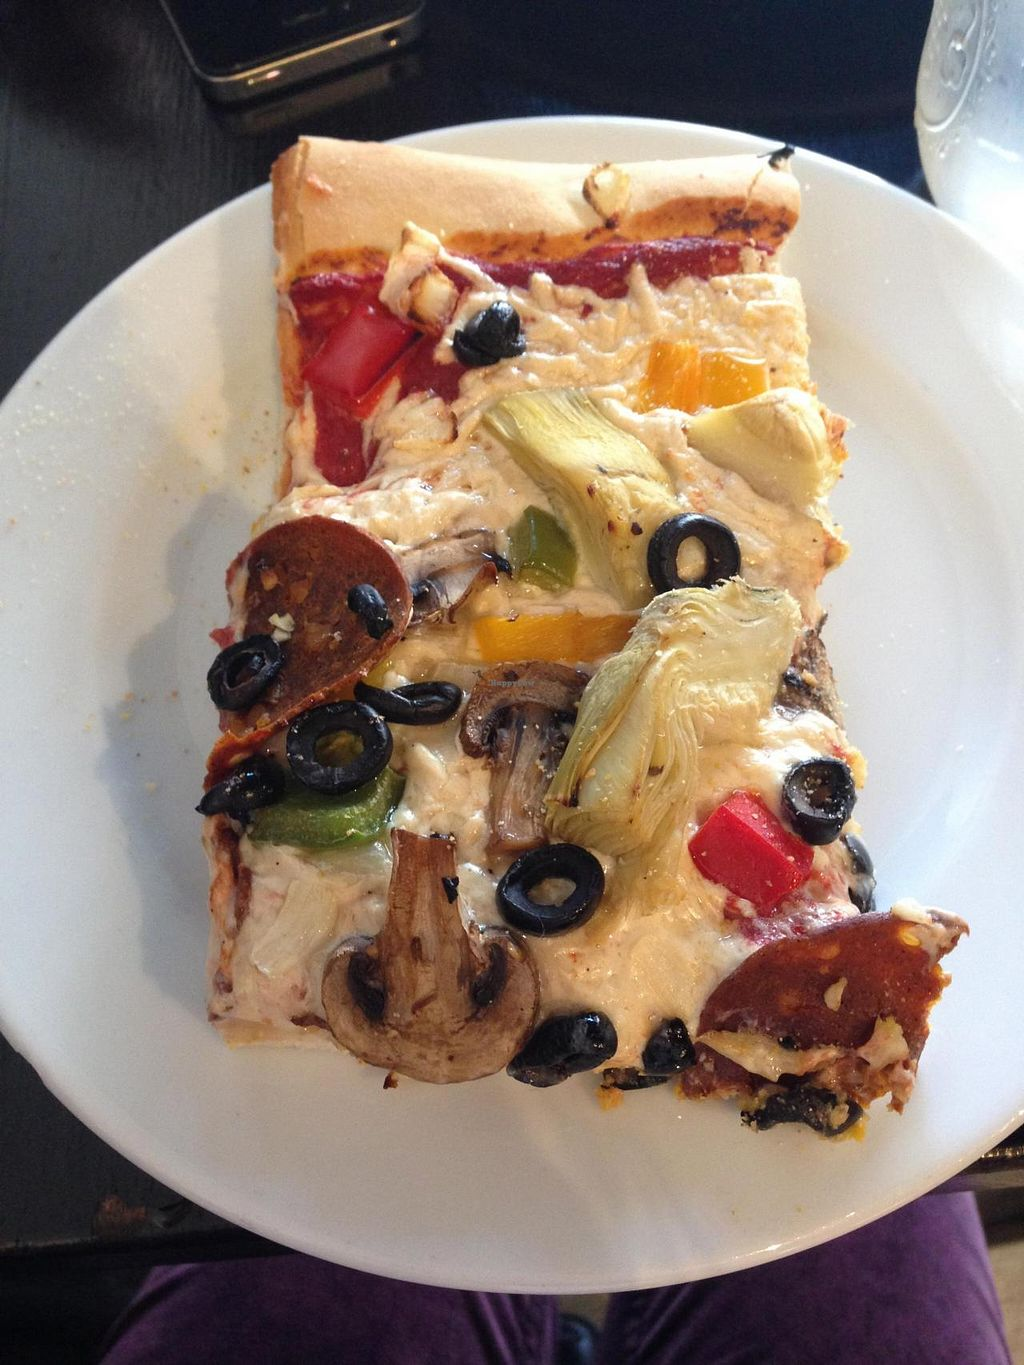 "Photo of Timeless Coffee Roasters and Bakery  by <a href=""/members/profile/jamiemichelle_xvx"">jamiemichelle_xvx</a> <br/>Pizza with vegan pepperoni, fresh garlic, olives, artichoke hearts, onions, bell peppers, and mushrooms <br/> June 5, 2014  - <a href='/contact/abuse/image/36793/71406'>Report</a>"